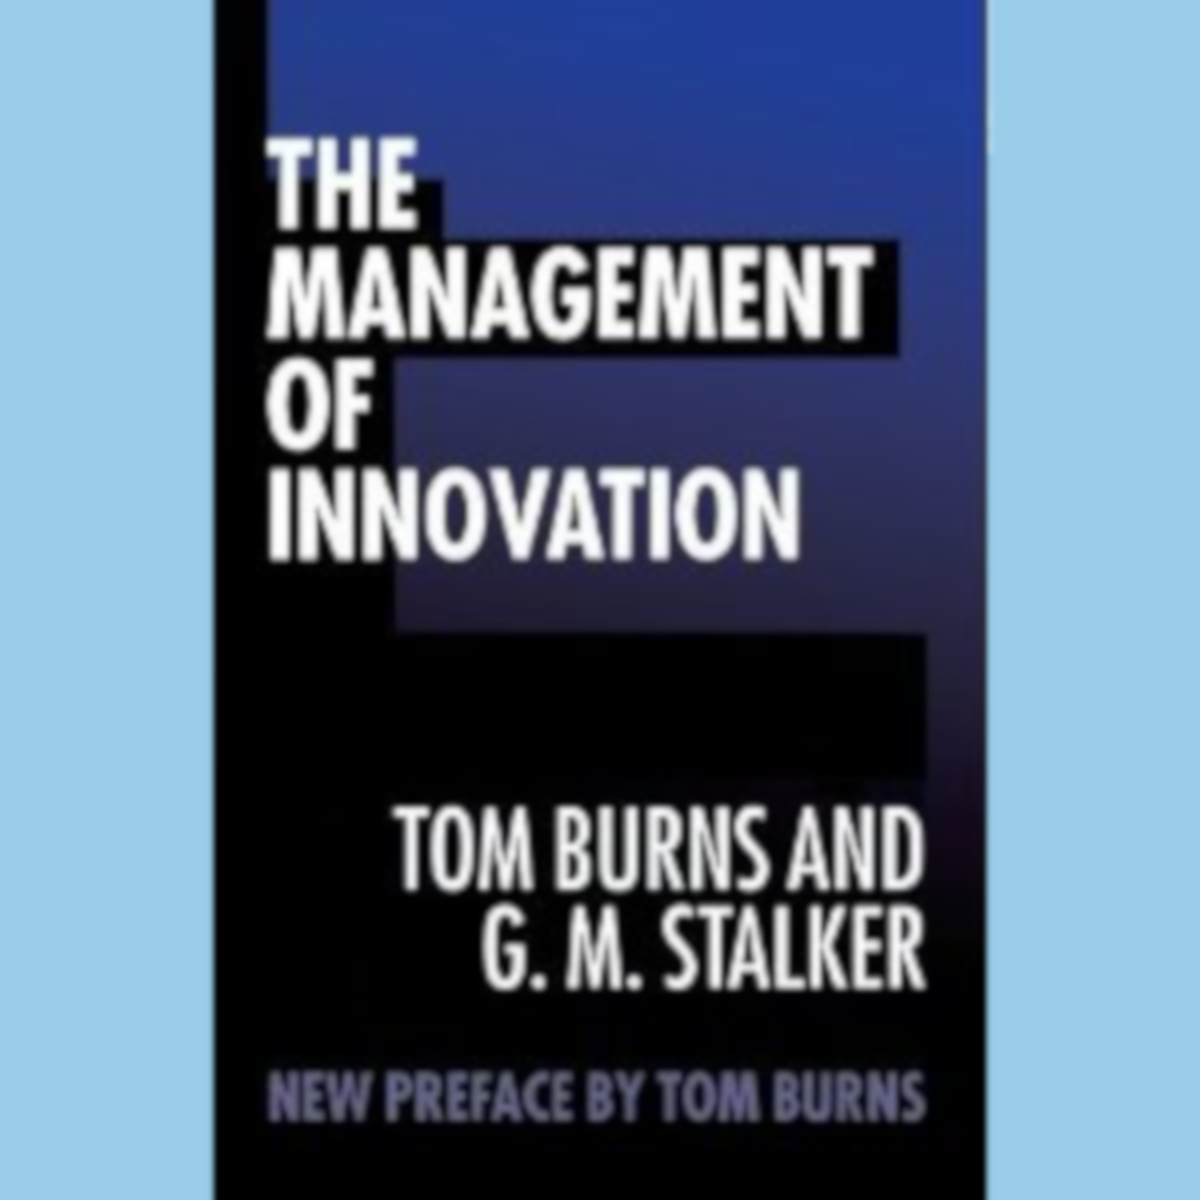 How Renowned Sociologist Tom Burns' Management Systems Respond-React to Change